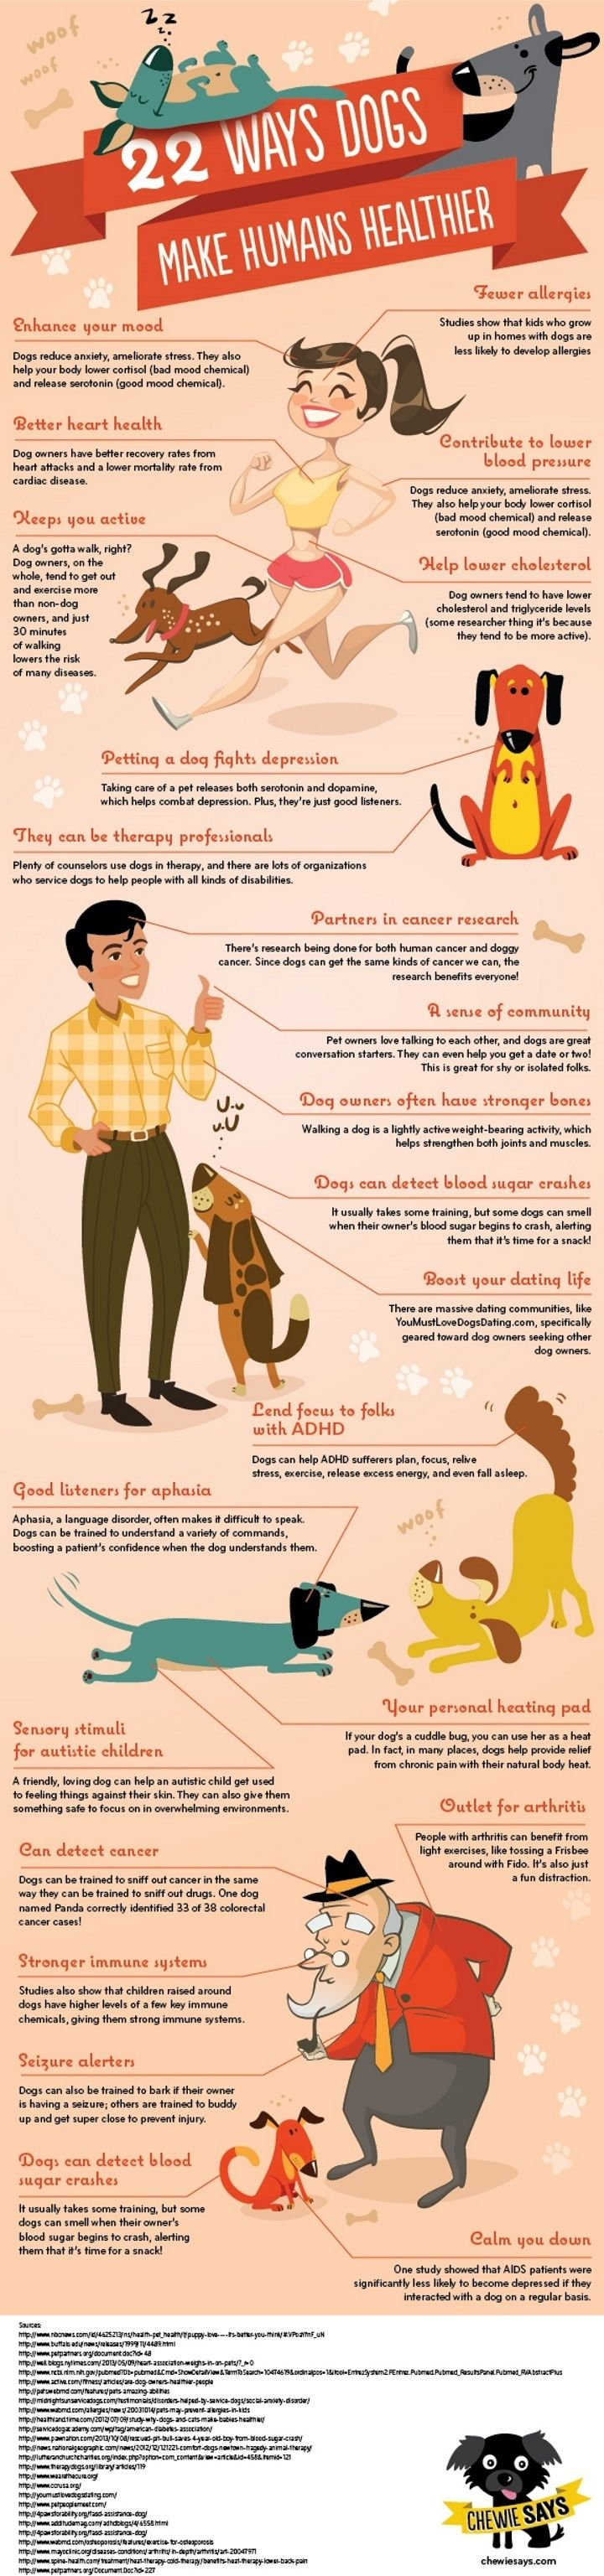 "The good pups at Cheewie Says decided to compile all the ways dogs help humans' health and create an adorable infographic about it! Here are 22 ways dogs can make humans healthier that you can point to (literally if you print this out) when cat people ask you, ""So WHY did you get a dog?"""